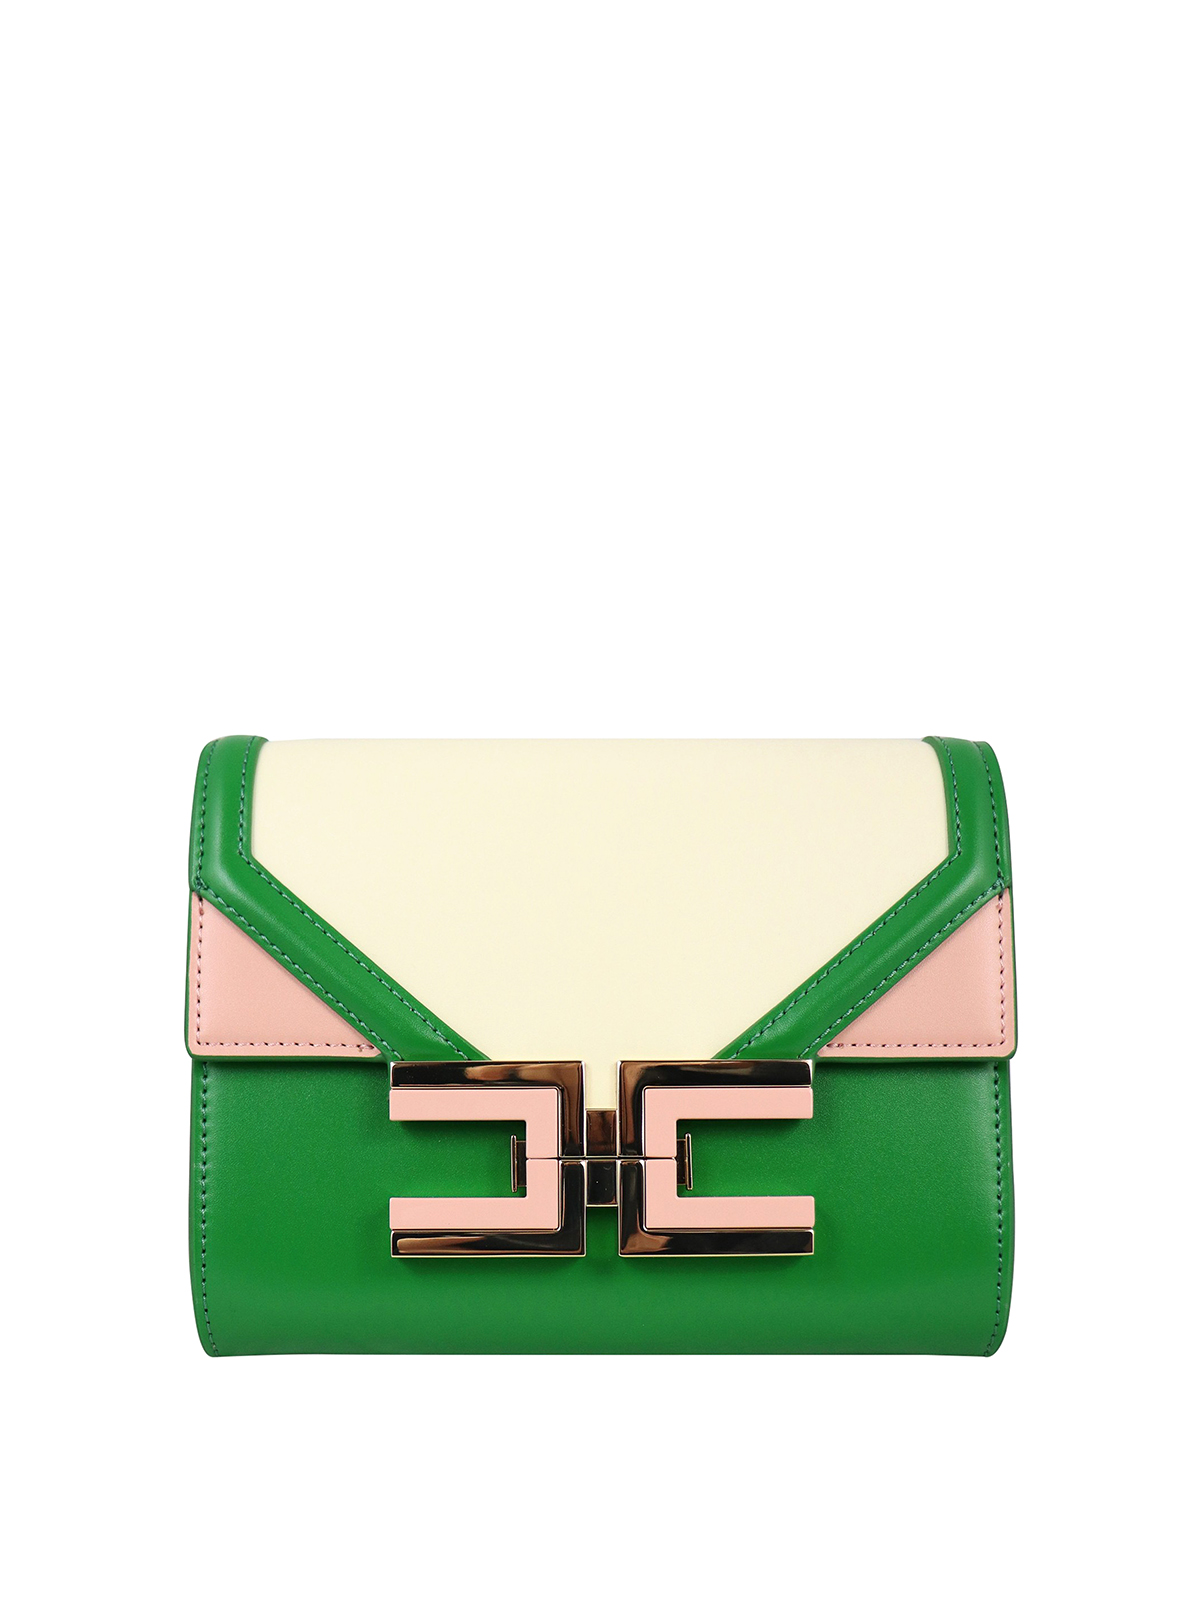 Elisabetta Franchi COLOUR BLOCK ECO LEATHER MINI CROSSBODY BAG